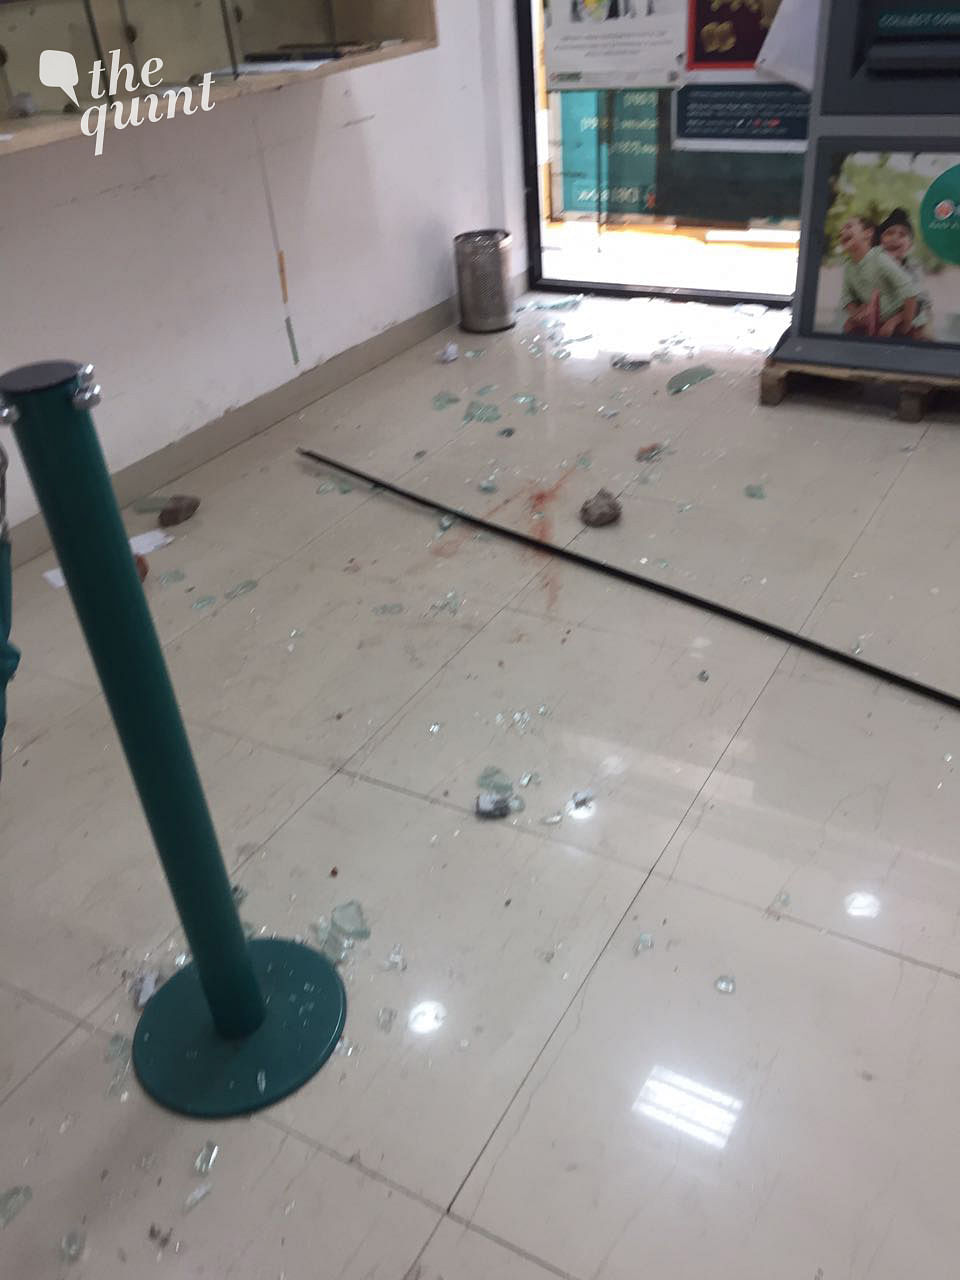 Some bank employees had to hide in the washroom for an hour after goons attacked the bank building. (Photo Courtesy: Daljit Kaur)